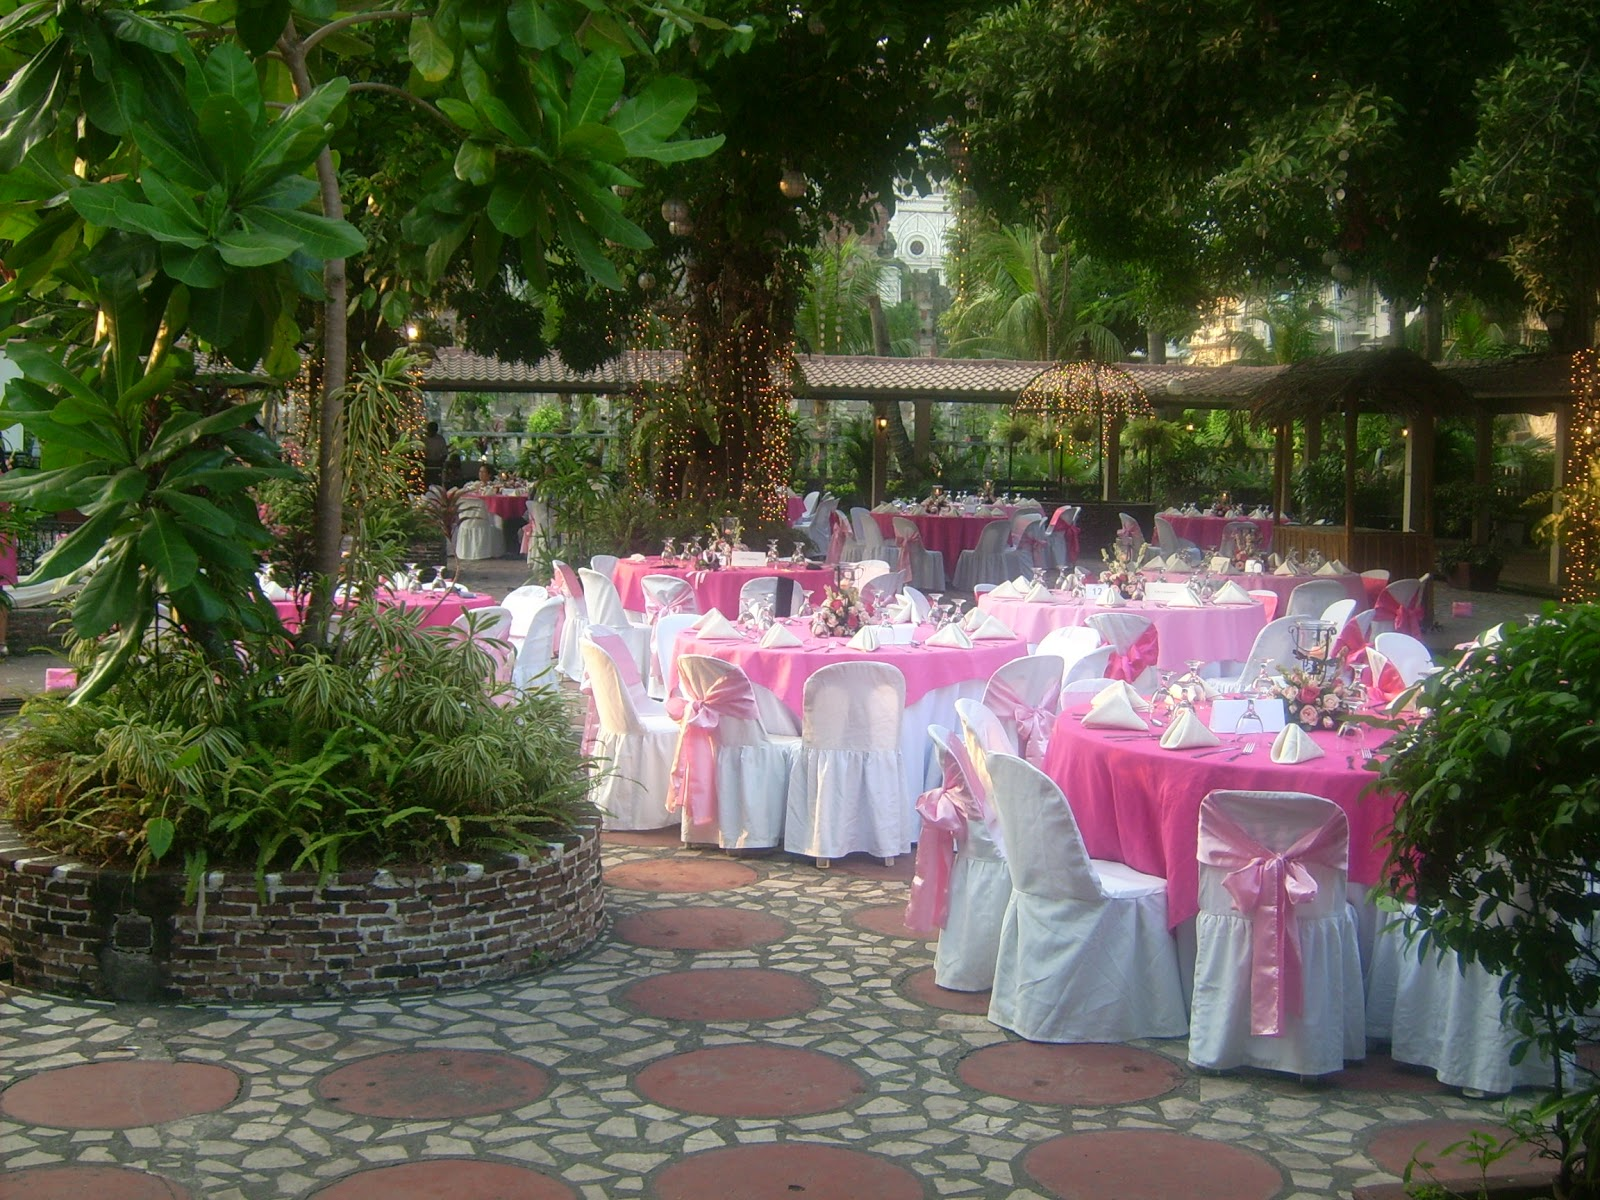 Lq designs ideas for wedding receptions on a budget for Backyard wedding decoration ideas on a budget